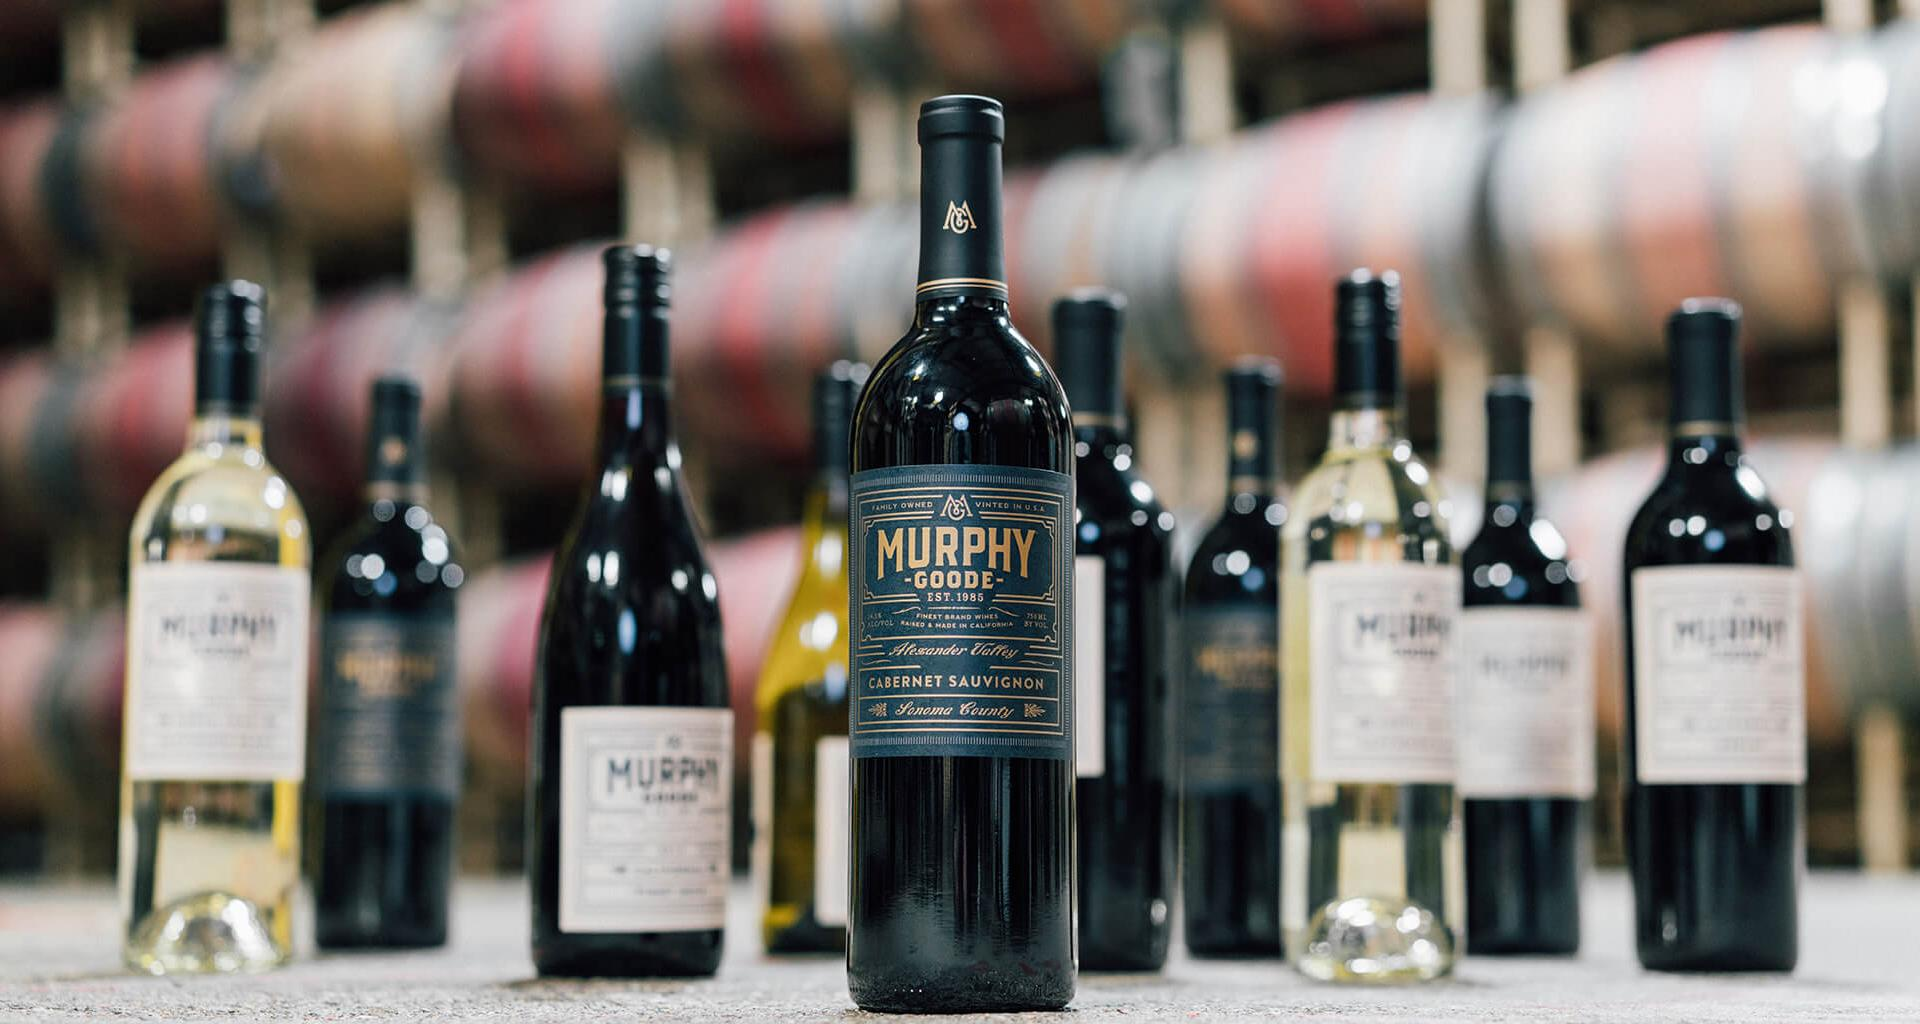 Murphy-Goode Alexander Valley Cabernet Sauvignon and collection of wines.